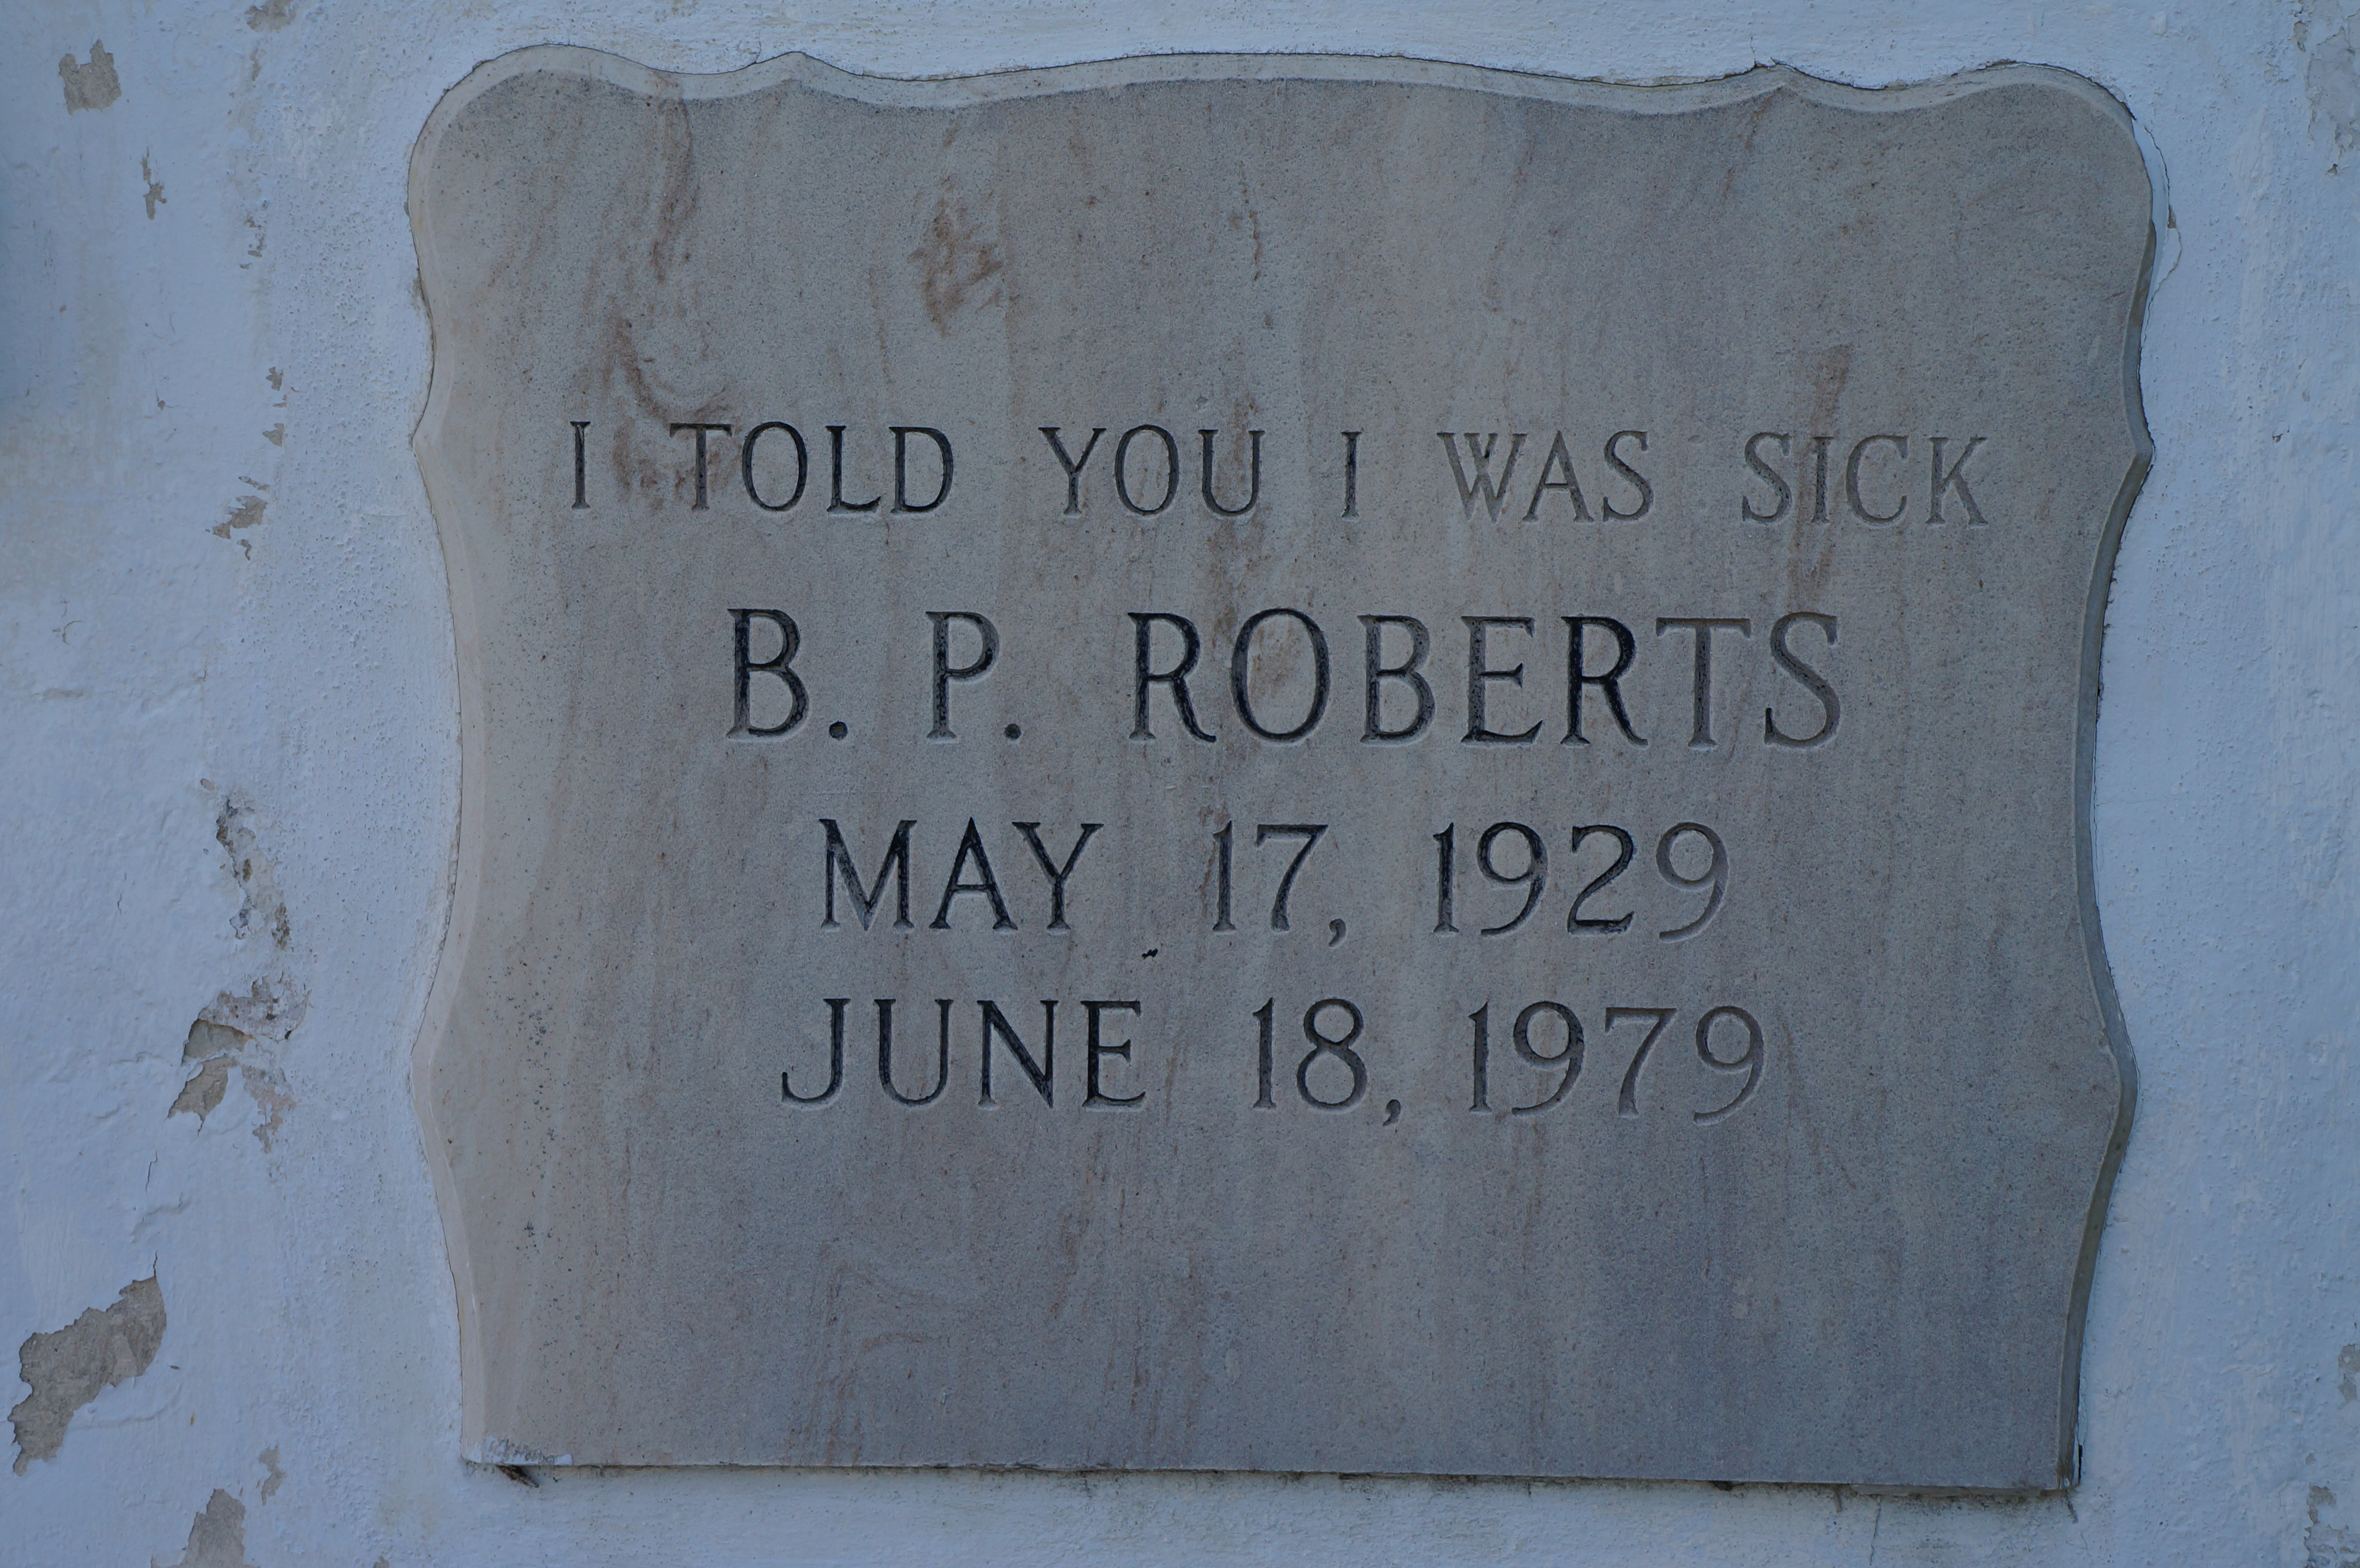 BP Roberts 1929-1979 I Told You I Was Sick 2